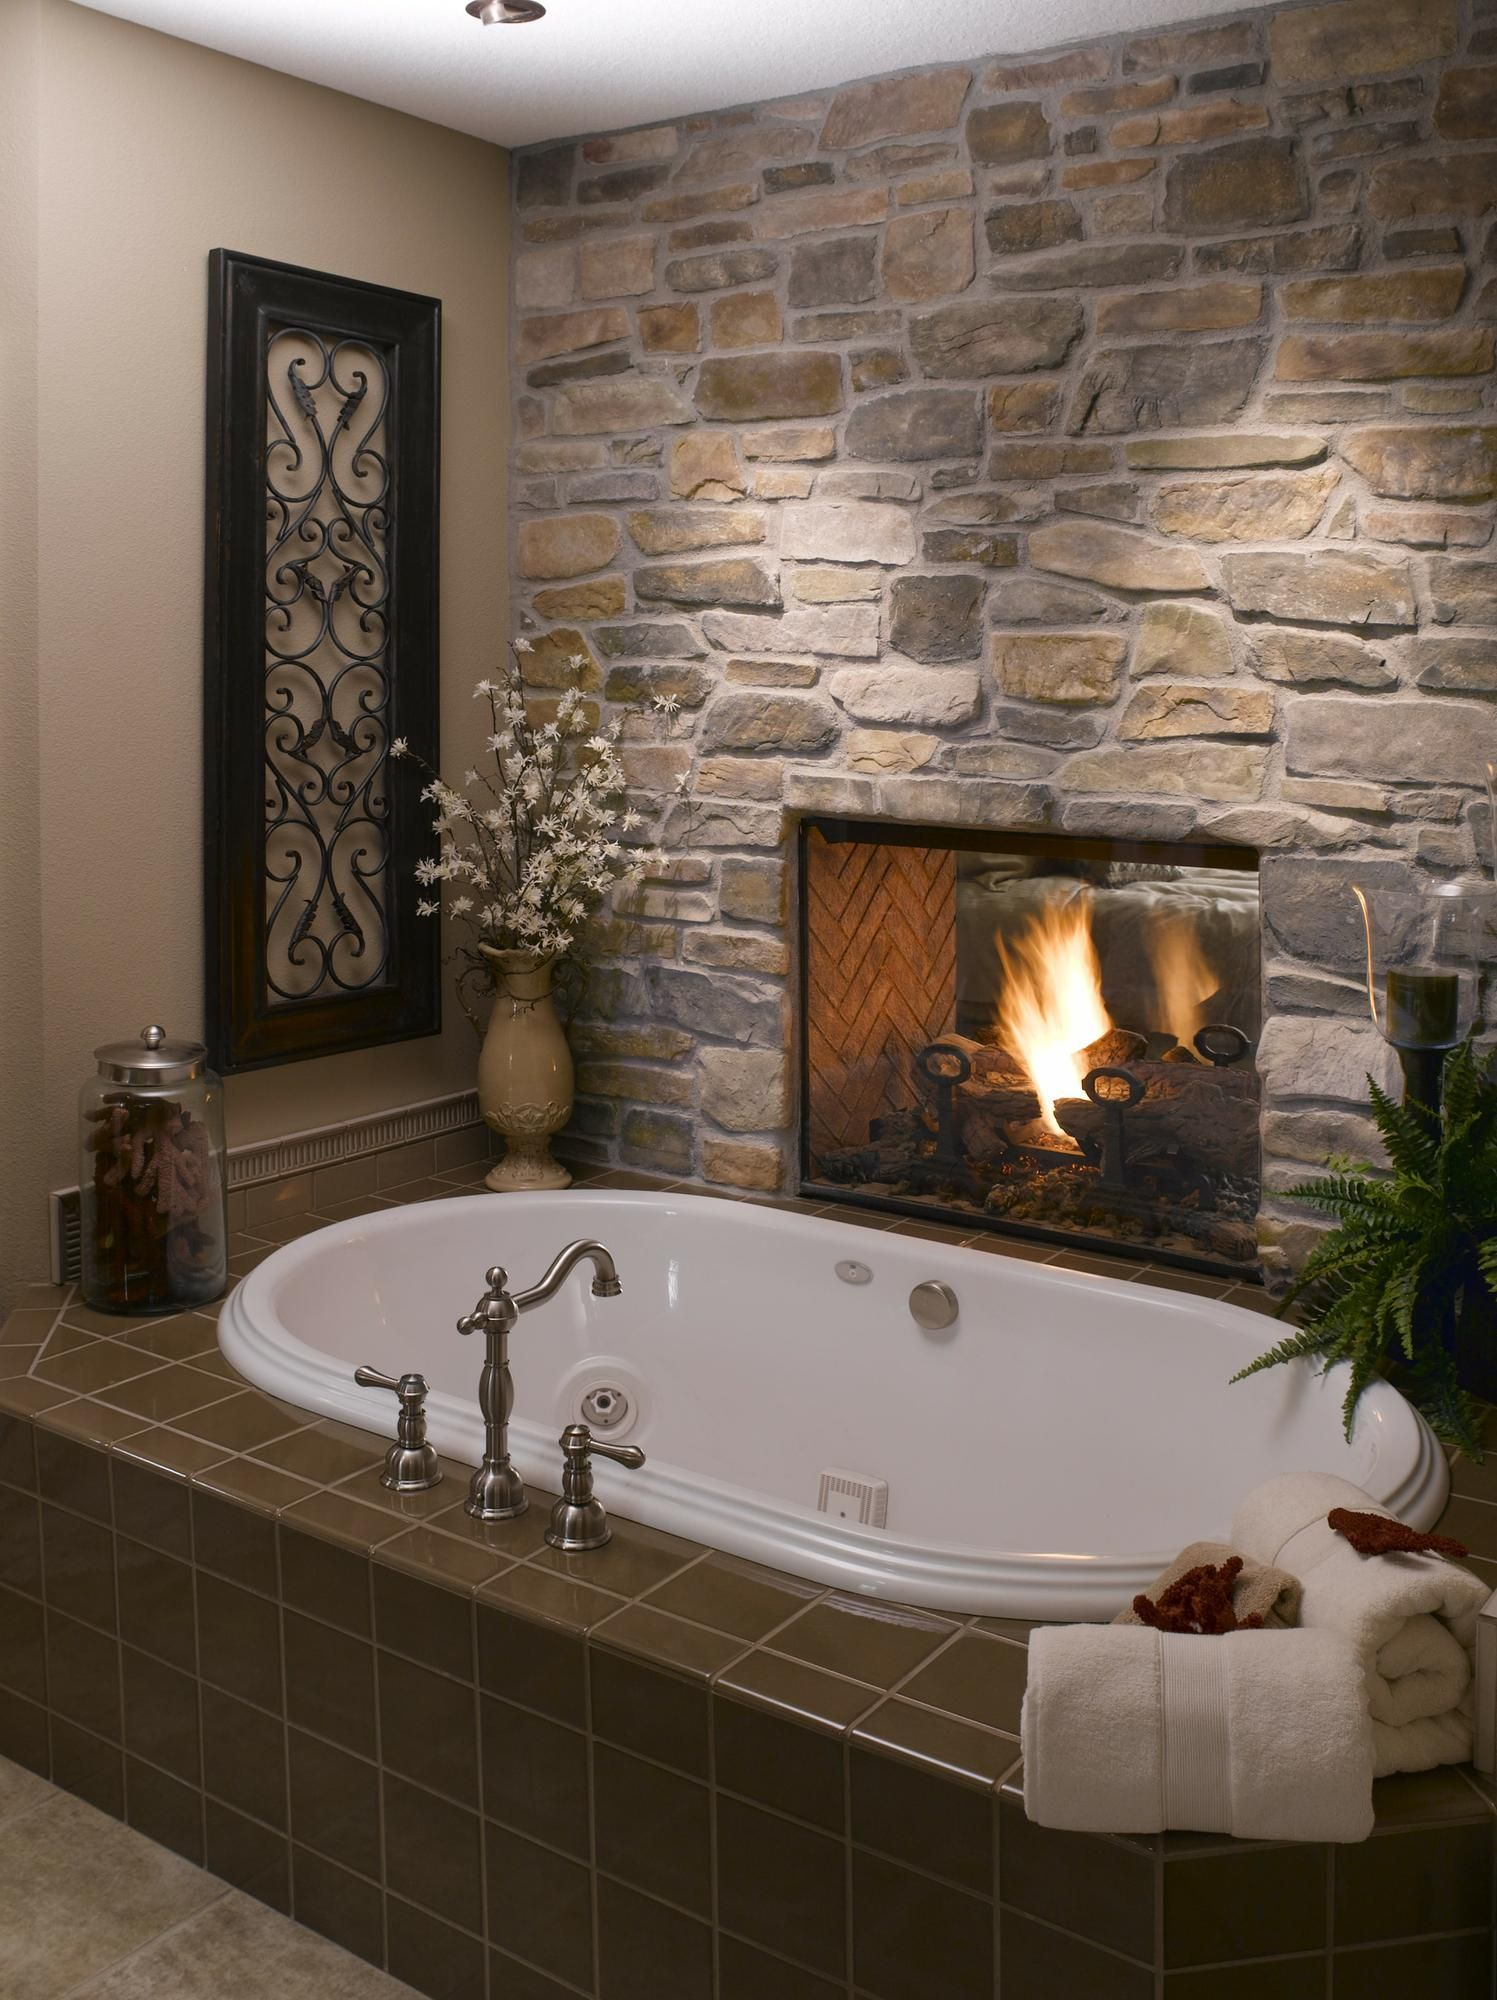 Fireplace tubol idea to put stone on the wall behind the tub